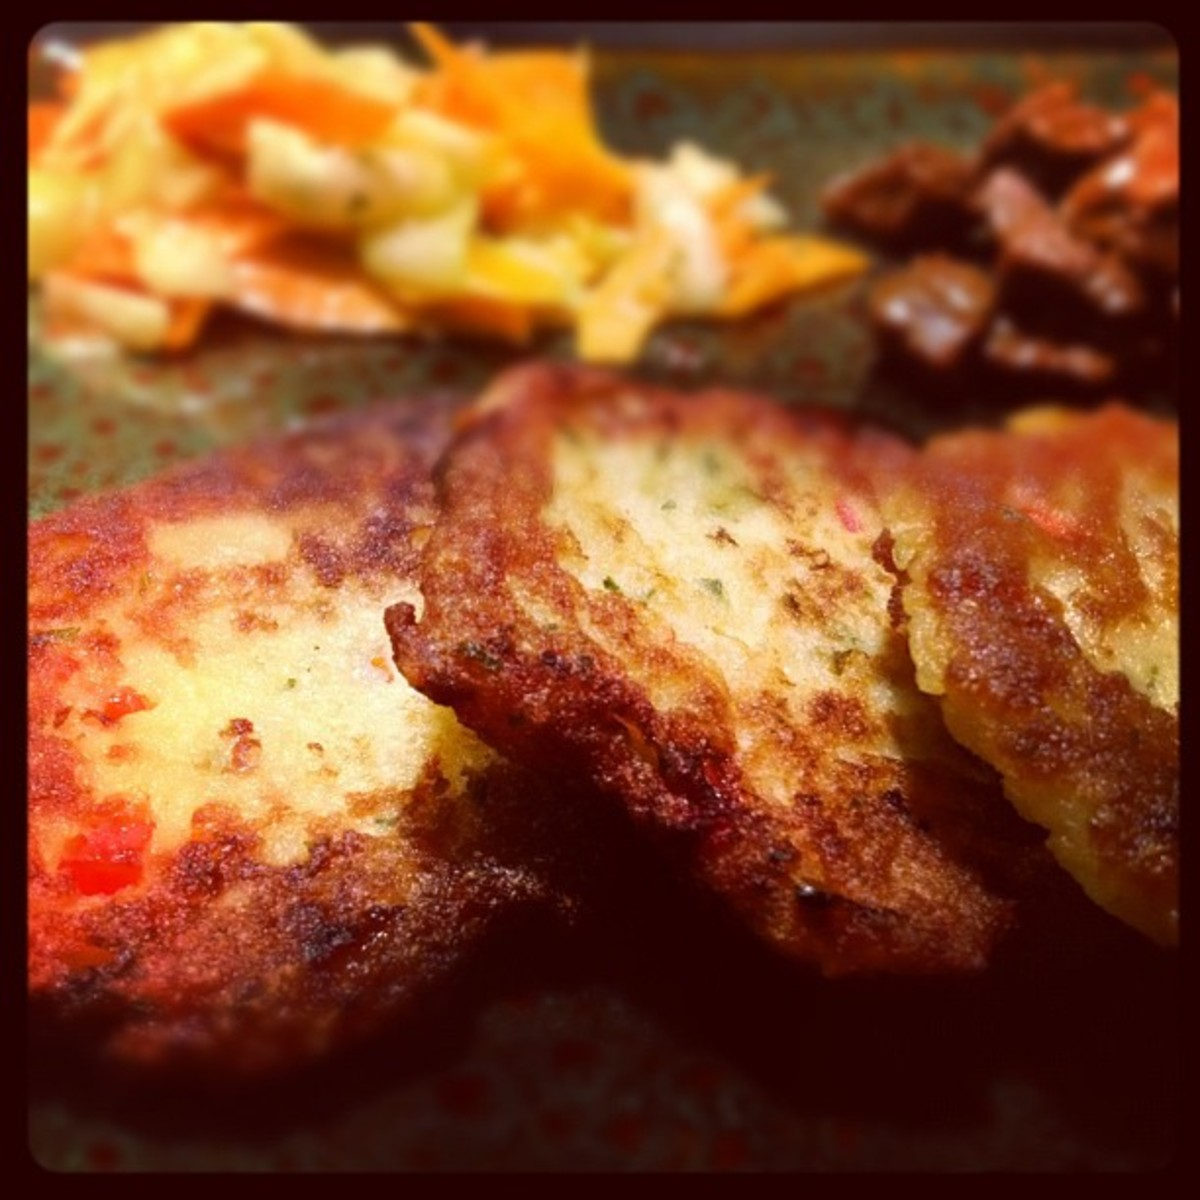 Potato Pancakes with Onion and Red Bell Pepper